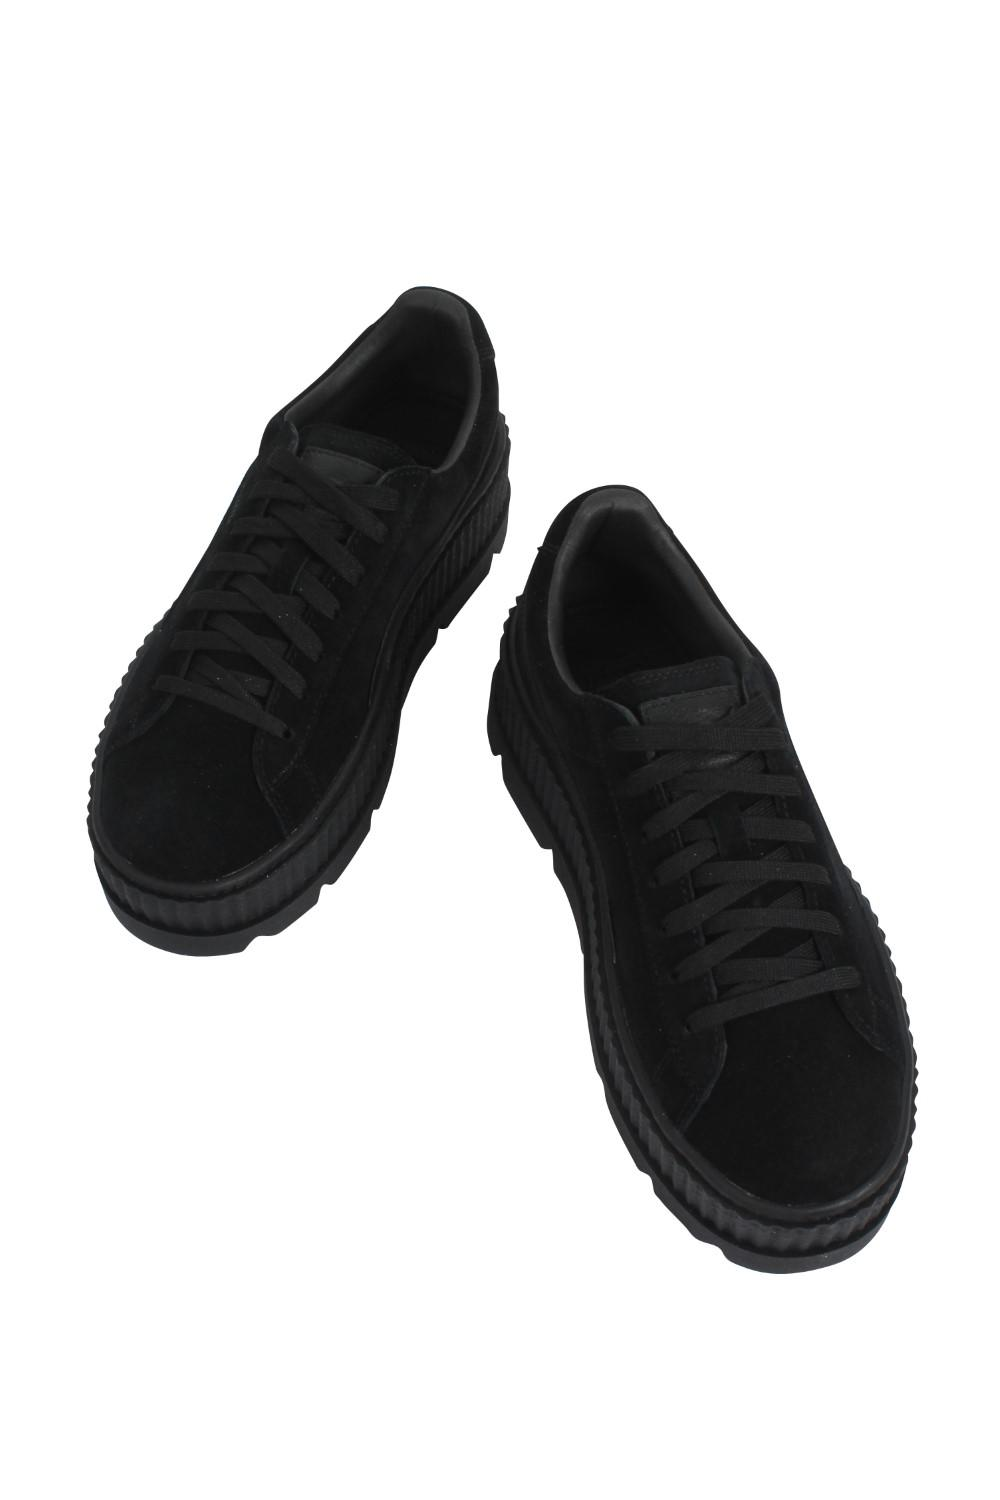 ... newest 0bf4e 6d2f6 Lyst - Puma X Fenty Cleated Creeper Suede in Black   sale ... d2acb6bc5